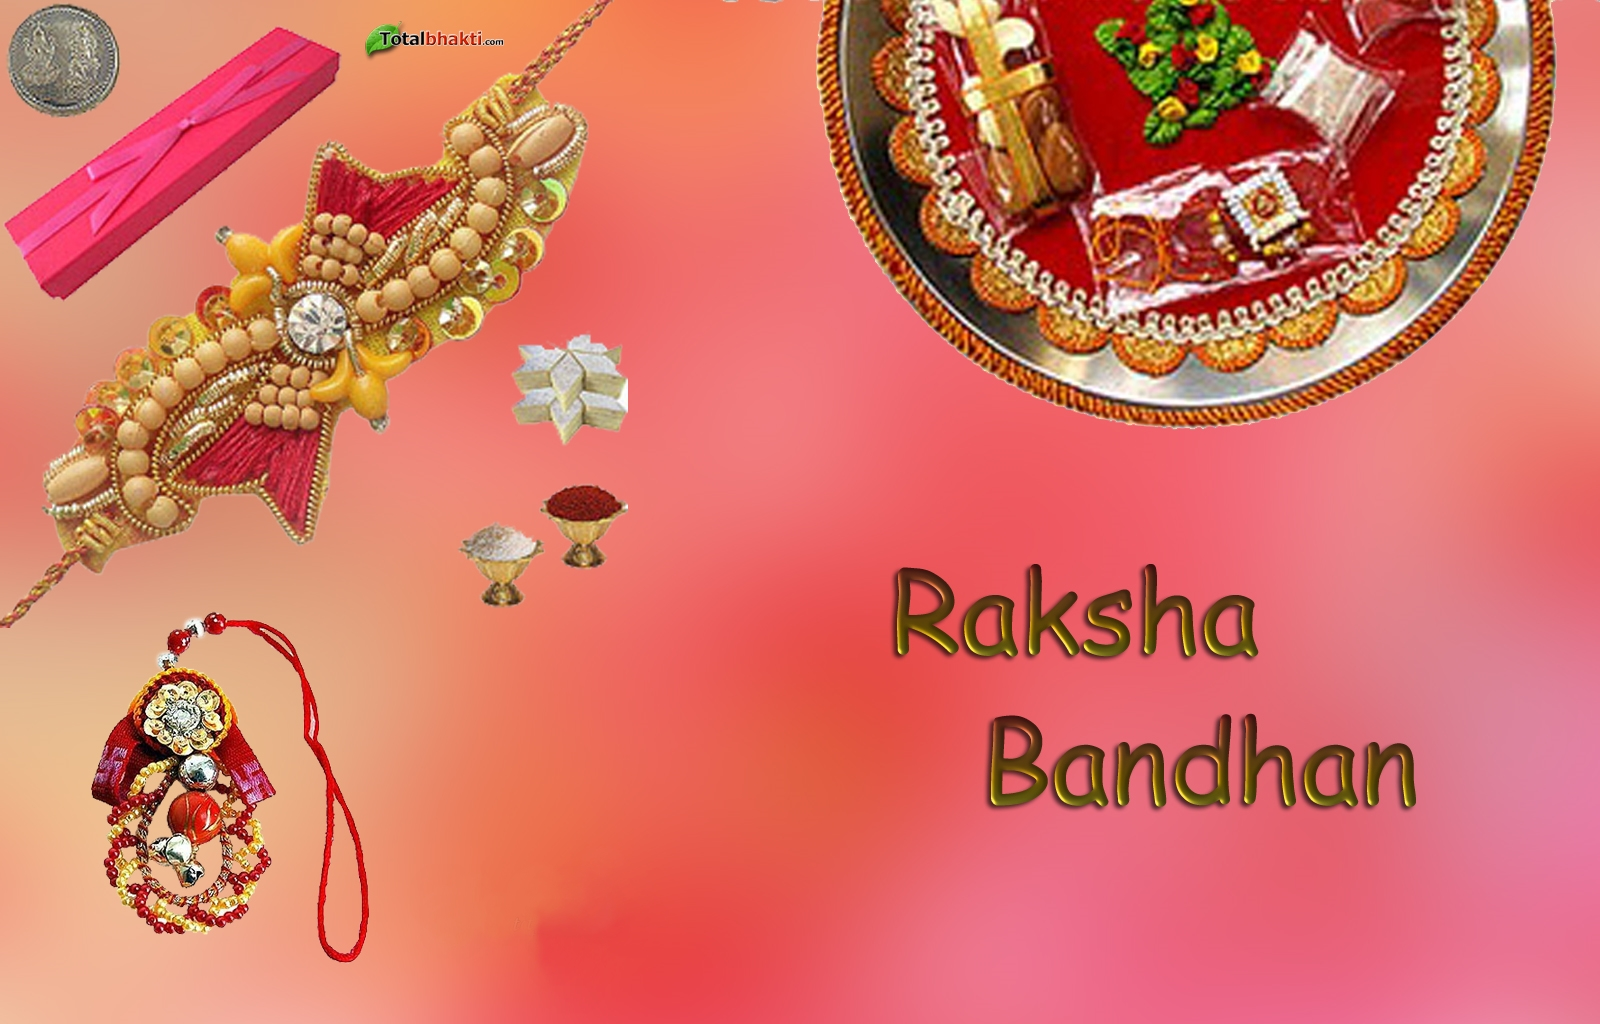 Rakshabandhan myths, 6 tales about the origin of the festival